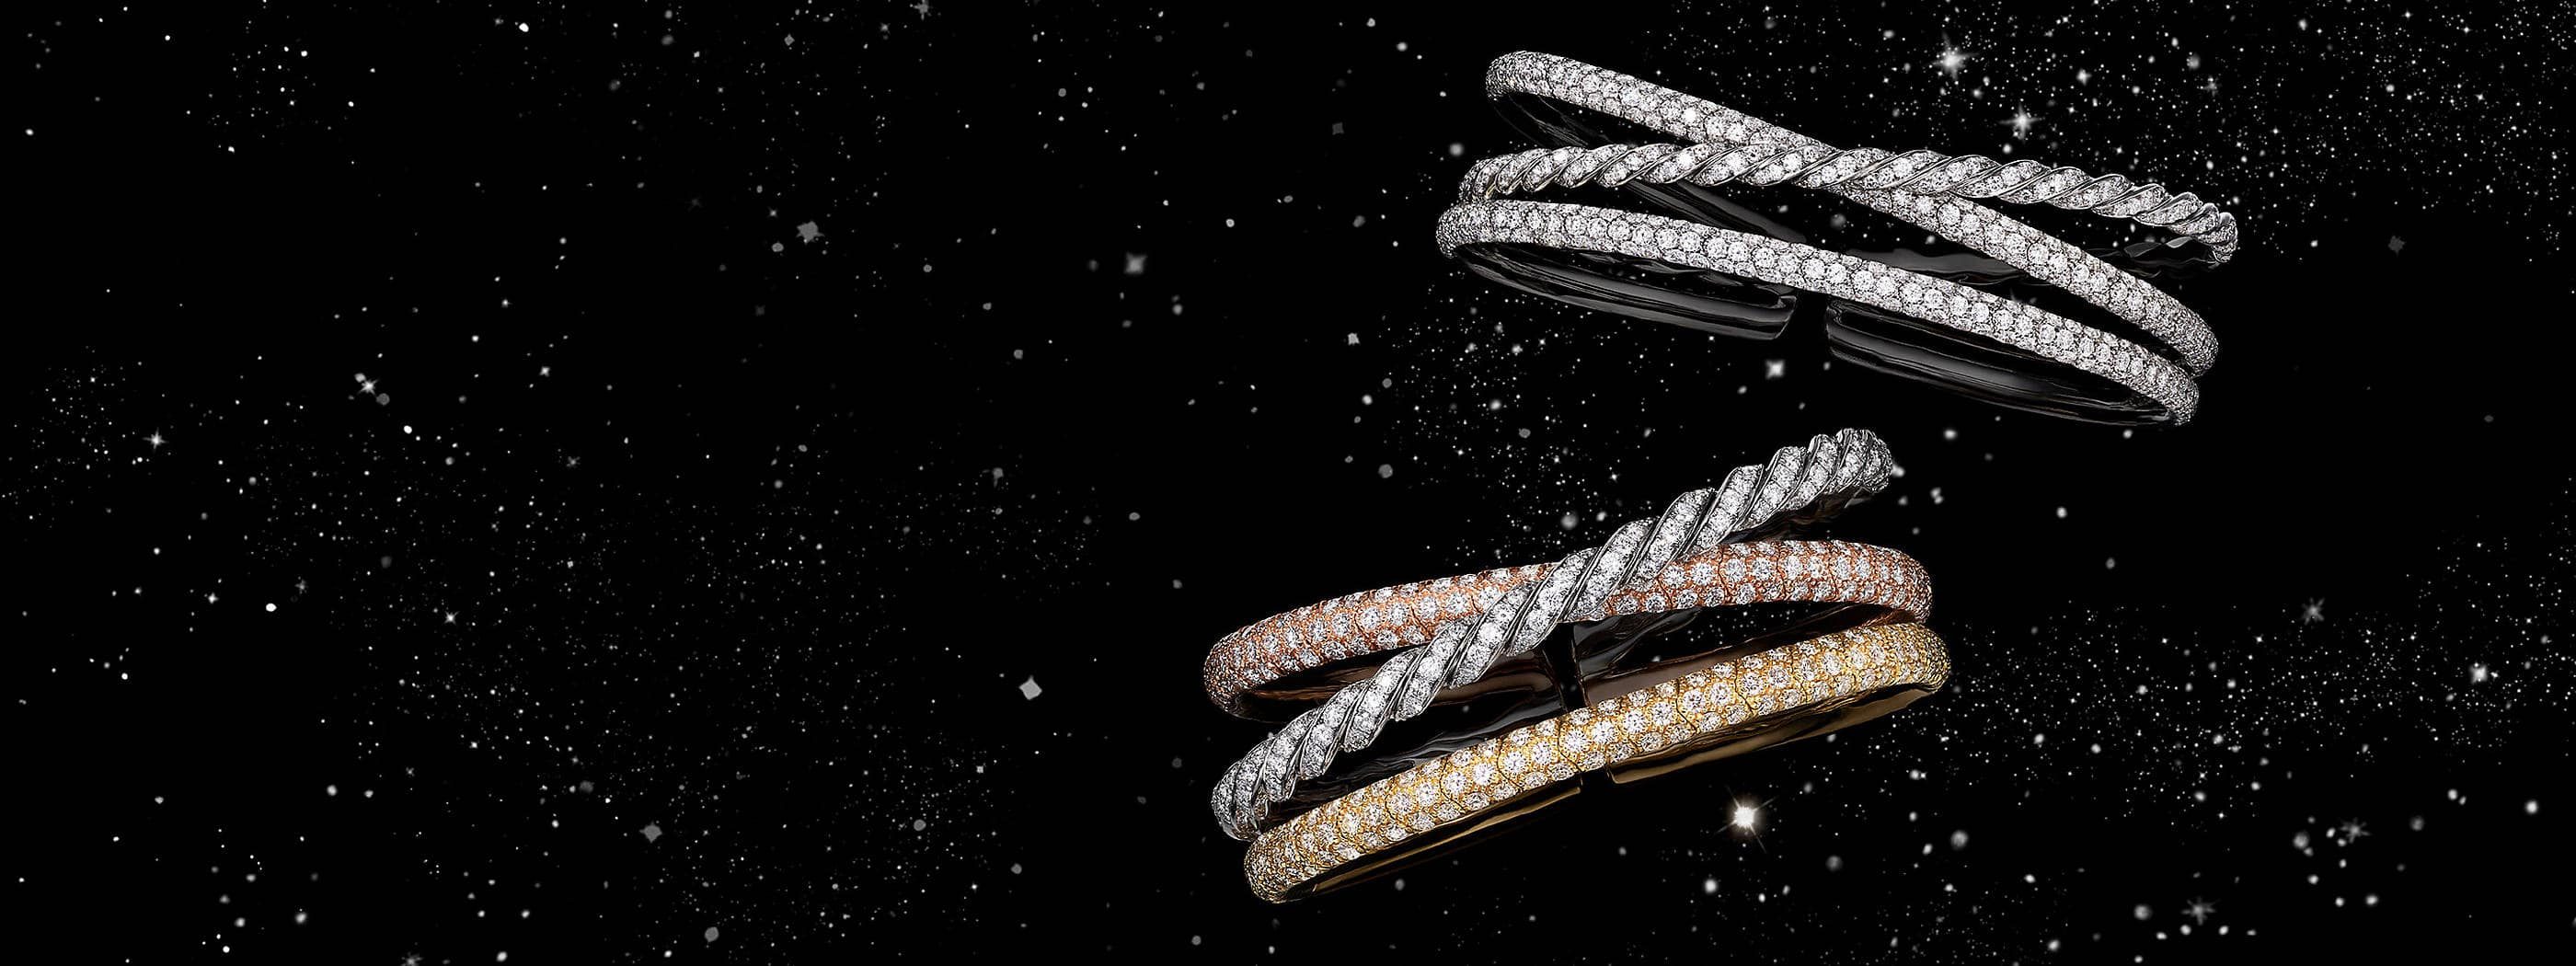 A color photograph shows two David Yurman women's Pavéflex three-row bracelets floating in front of a starry night sky. The bracelets are crafted from 18K white gold with pavé diamonds or 18K yellow, white and rose gold with pavé diamonds.